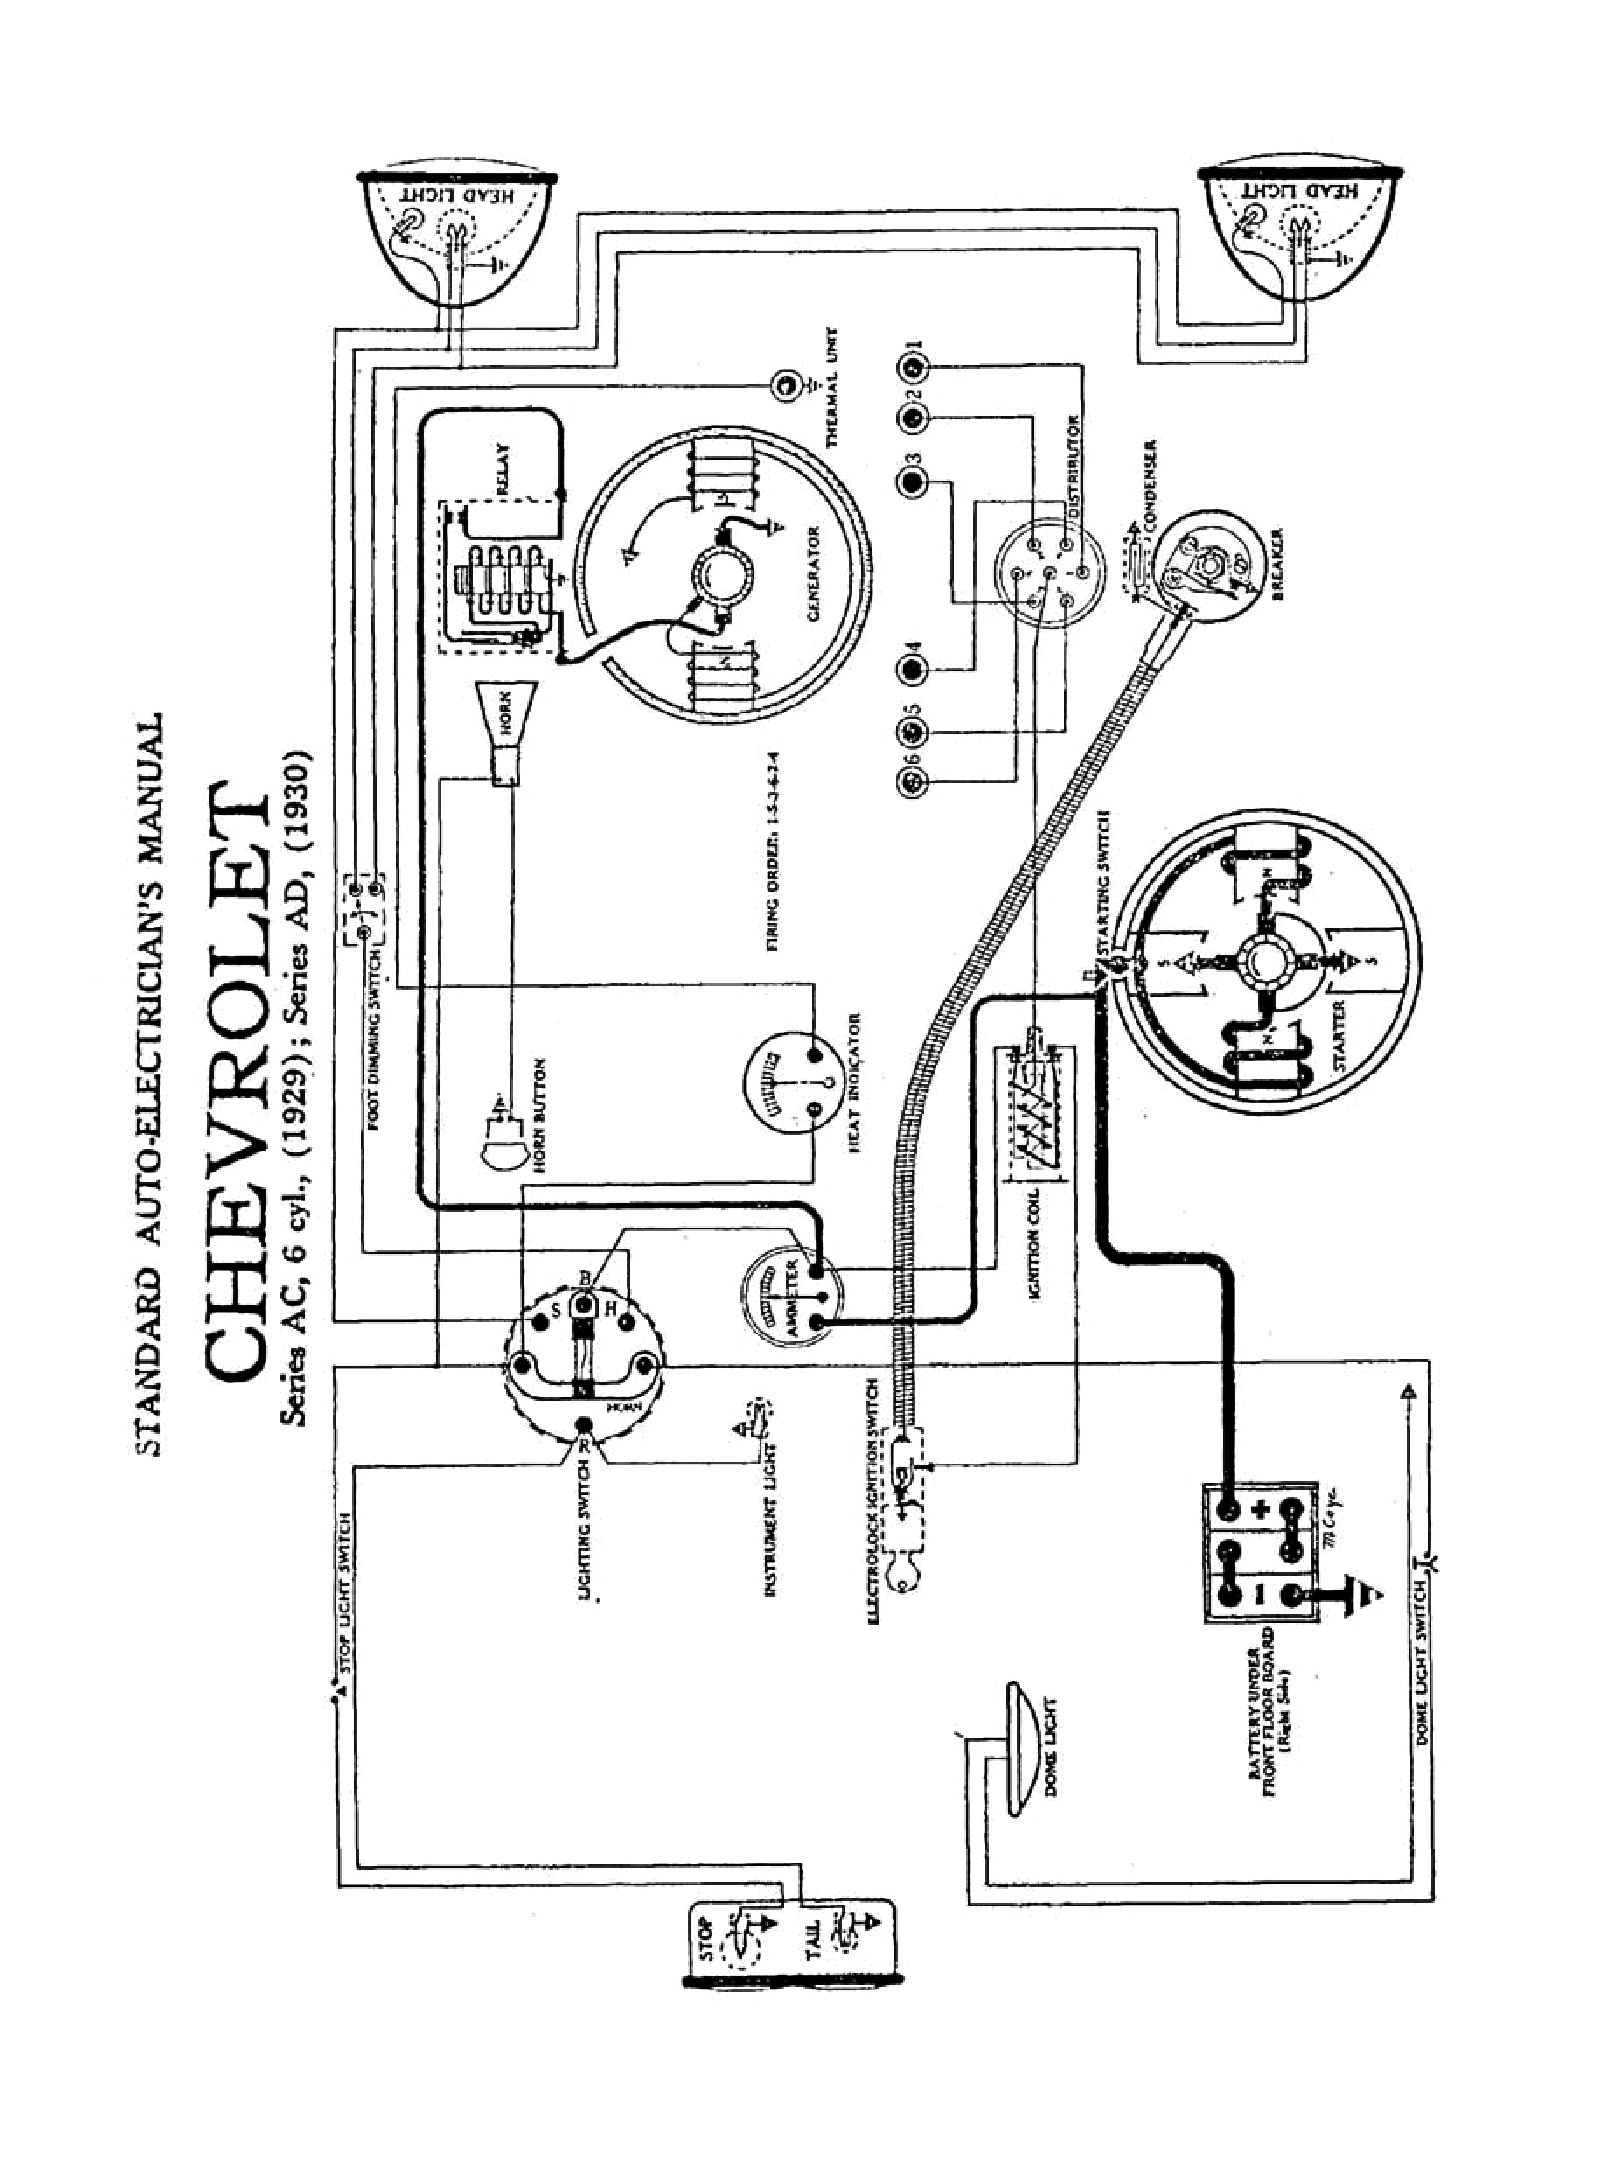 hight resolution of 1940 oldsmobile wiring schematic wiring diagram 1940 oldsmobile wiring schematic